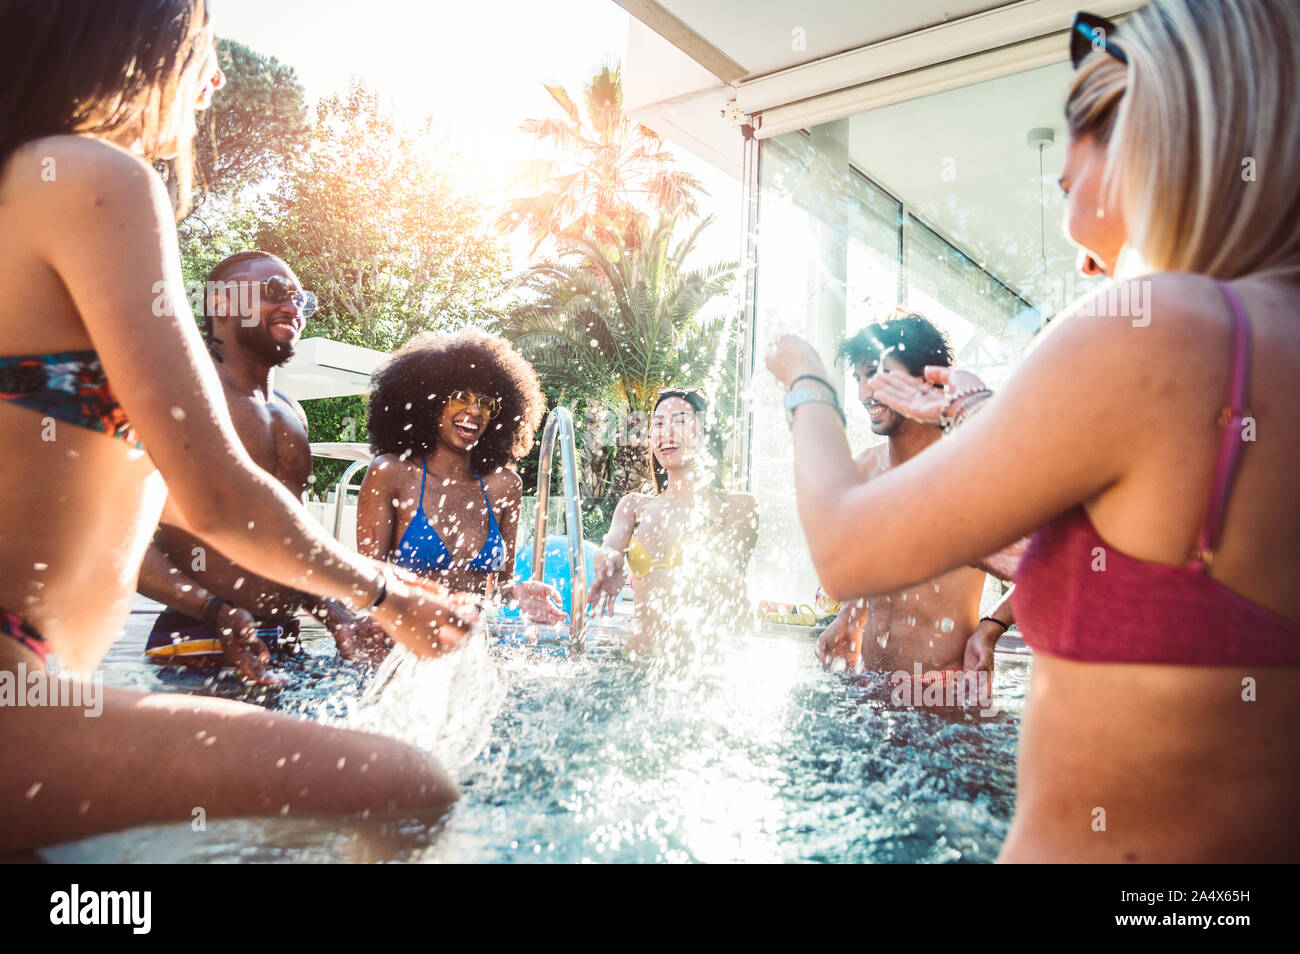 Group of multiracial friends having fun at pool party Stock Photo